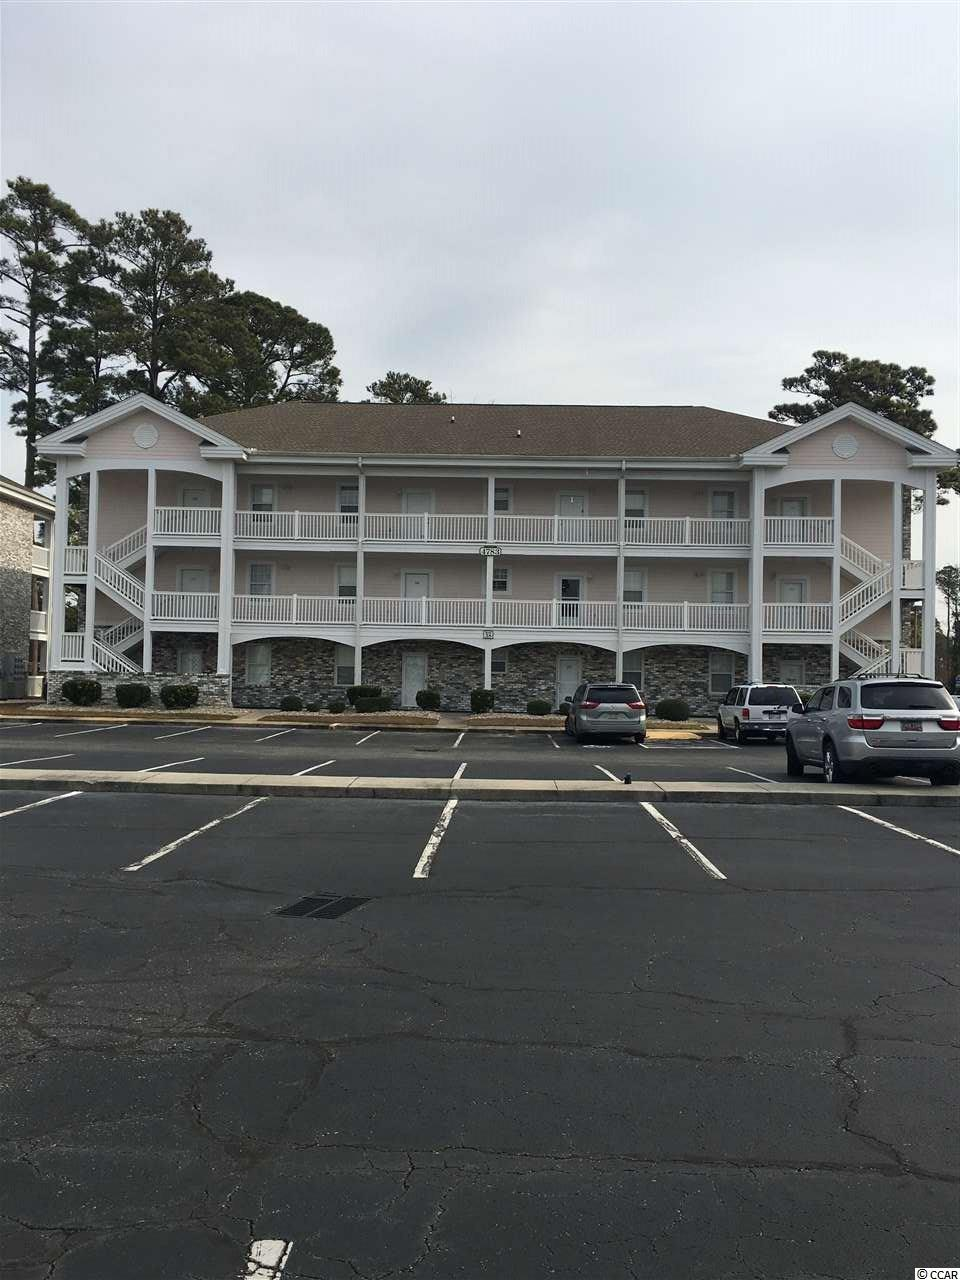 Welcome home to this furnished, one bedroom, one and a half bathroom unit located in the golf course community at Magnolia Place. Entering the unit through the foyer, you are welcomed by the bright and open floor plan.  Enjoy cooking and entertaining in a kitchen that is open to the living and dining area that features a vaulted ceiling and a bay window that floods the space with natural light. The master bedroom is a peaceful oasis with a vaulted ceiling and ceiling fan to end your day. Less than 2 miles to the sandy shores of the beach for a day full of sun and fun! For additional entertainment, there's Broadway at the Beach with amusements, restaurants and shopping, or you can enjoy a fun golfing experience at Top Golf, and of course there is the downtown oceanfront Boardwalk. A great unit in a perfect location to call Home!